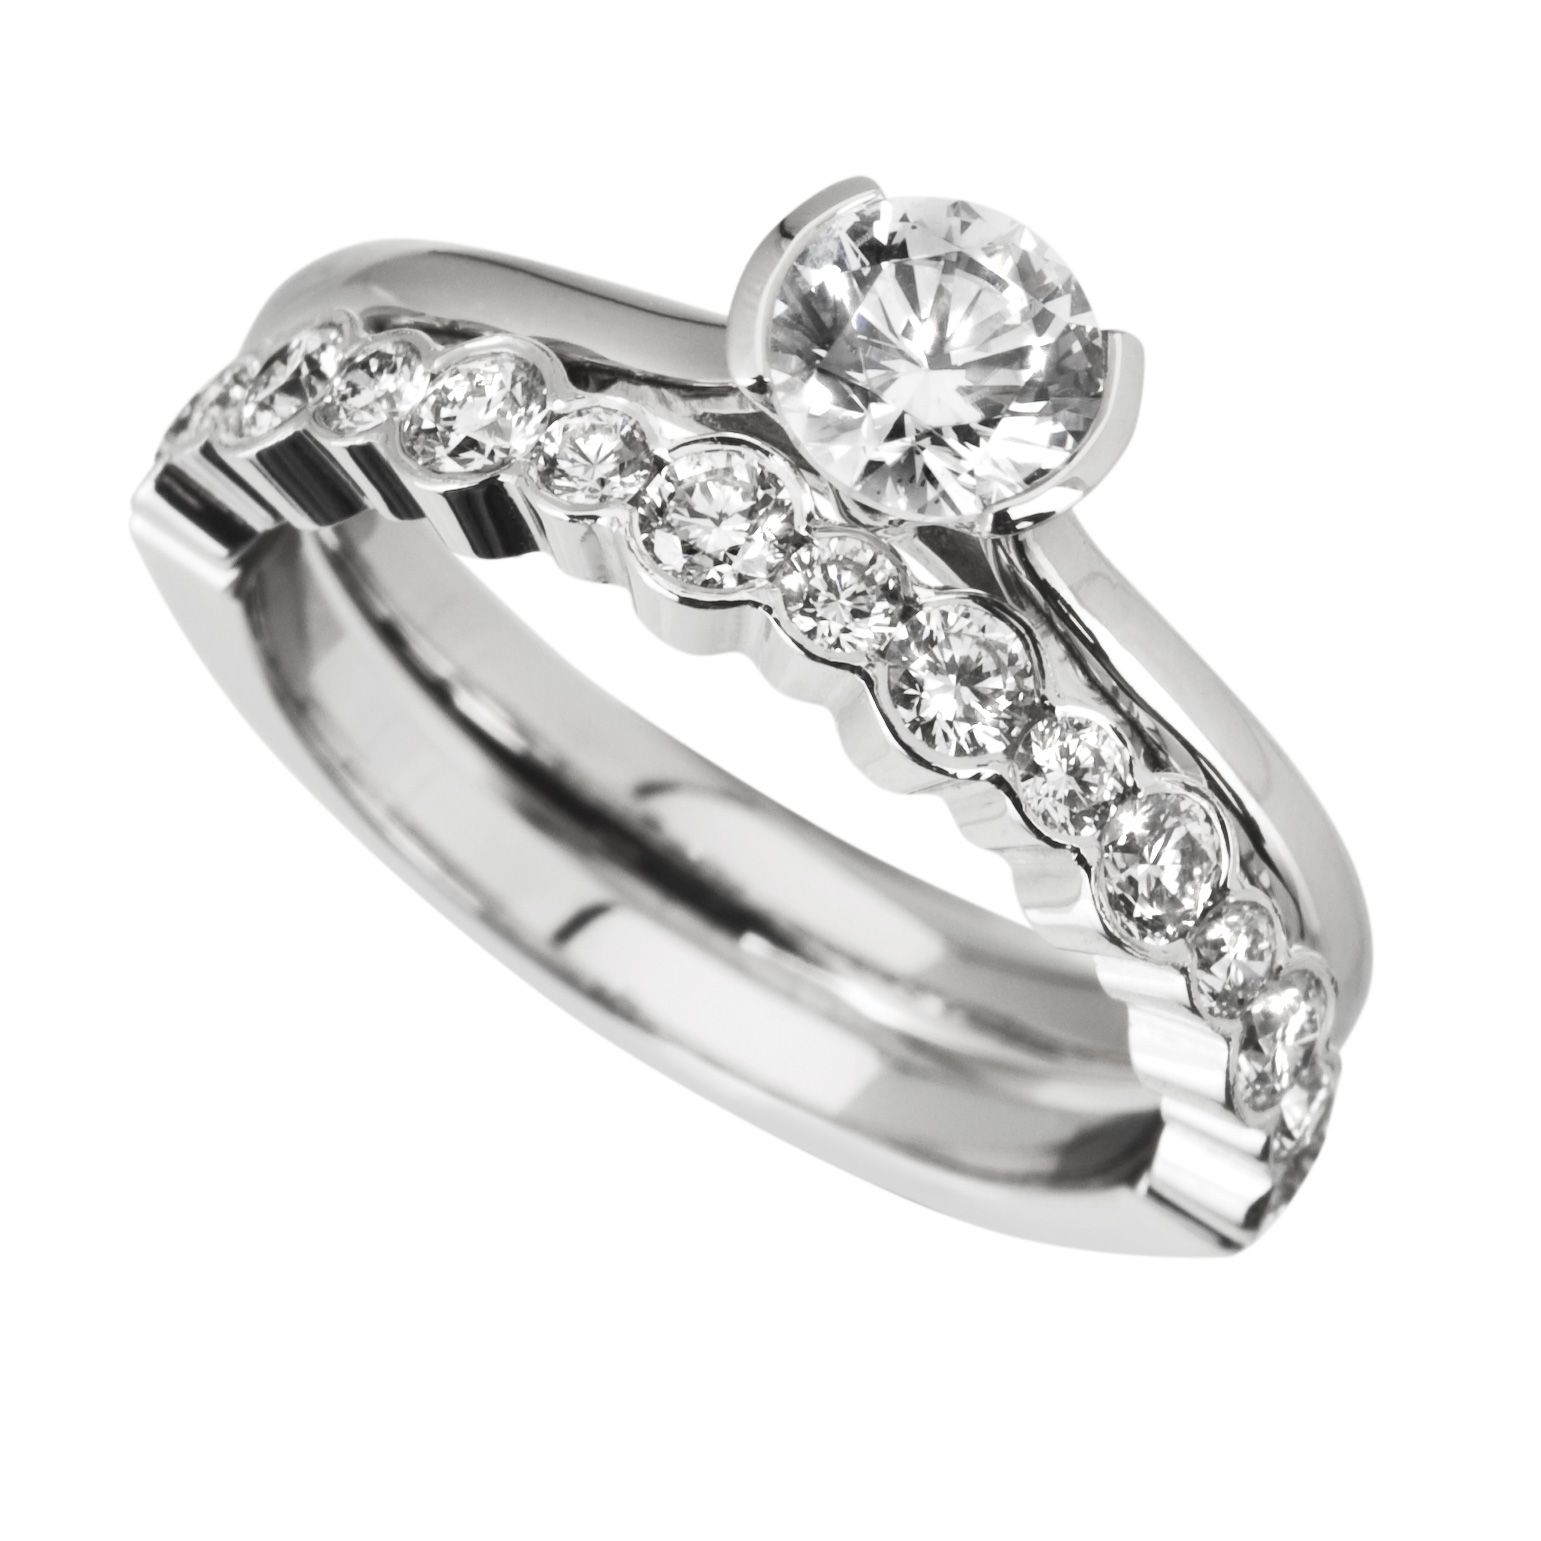 images of wedding rings sets rub over engagement ring with matching diamond - Engagement Wedding Ring Set